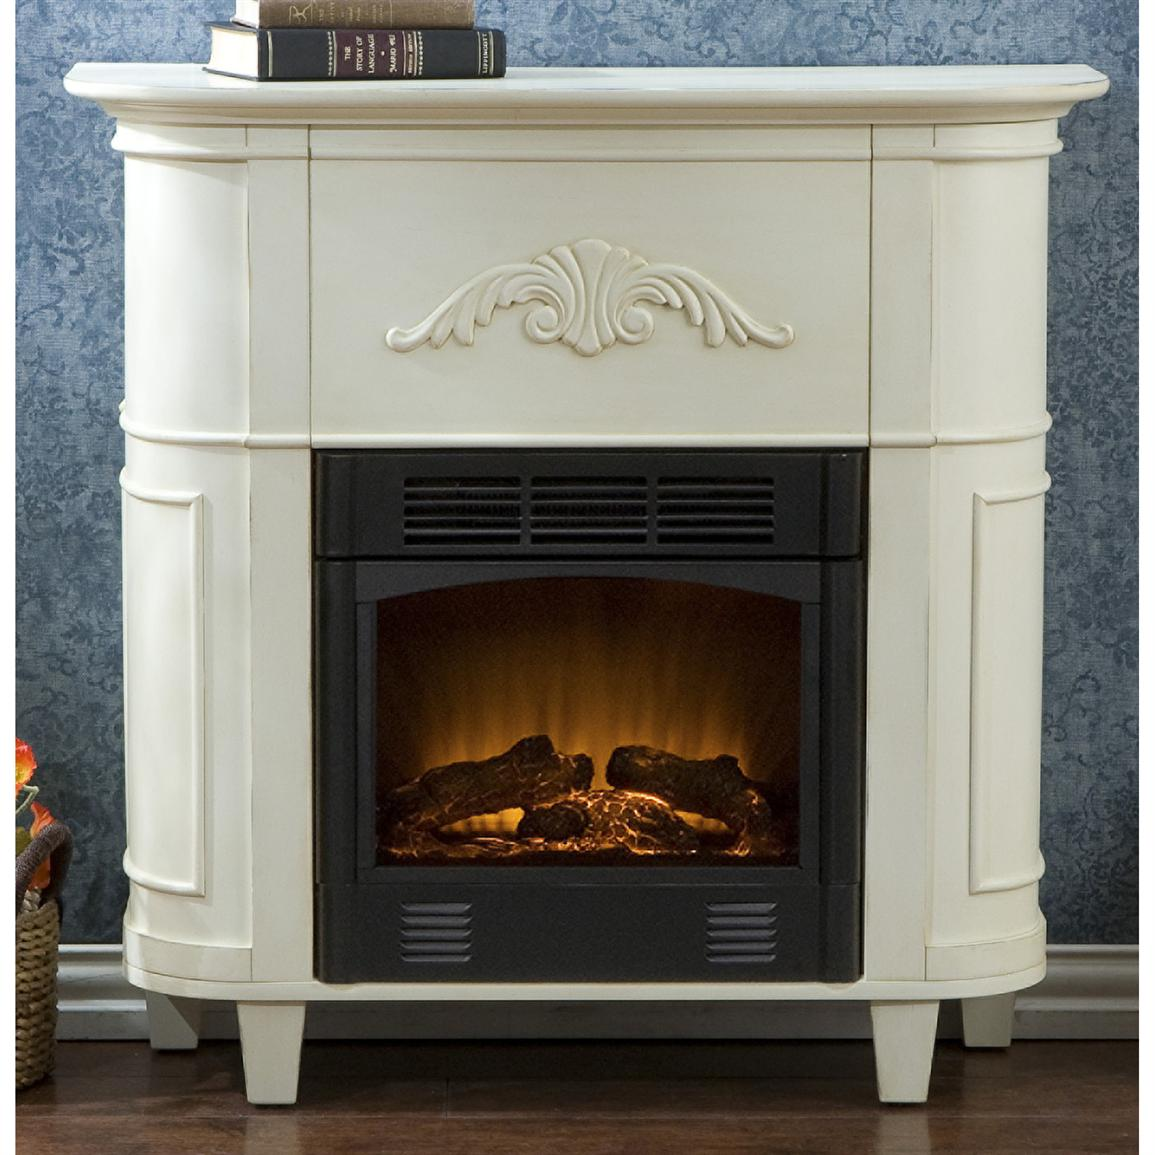 Southern Enterprises Inc Mayfair Petit Electric Fireplace 176145 Fireplaces At Sportsman 39 S